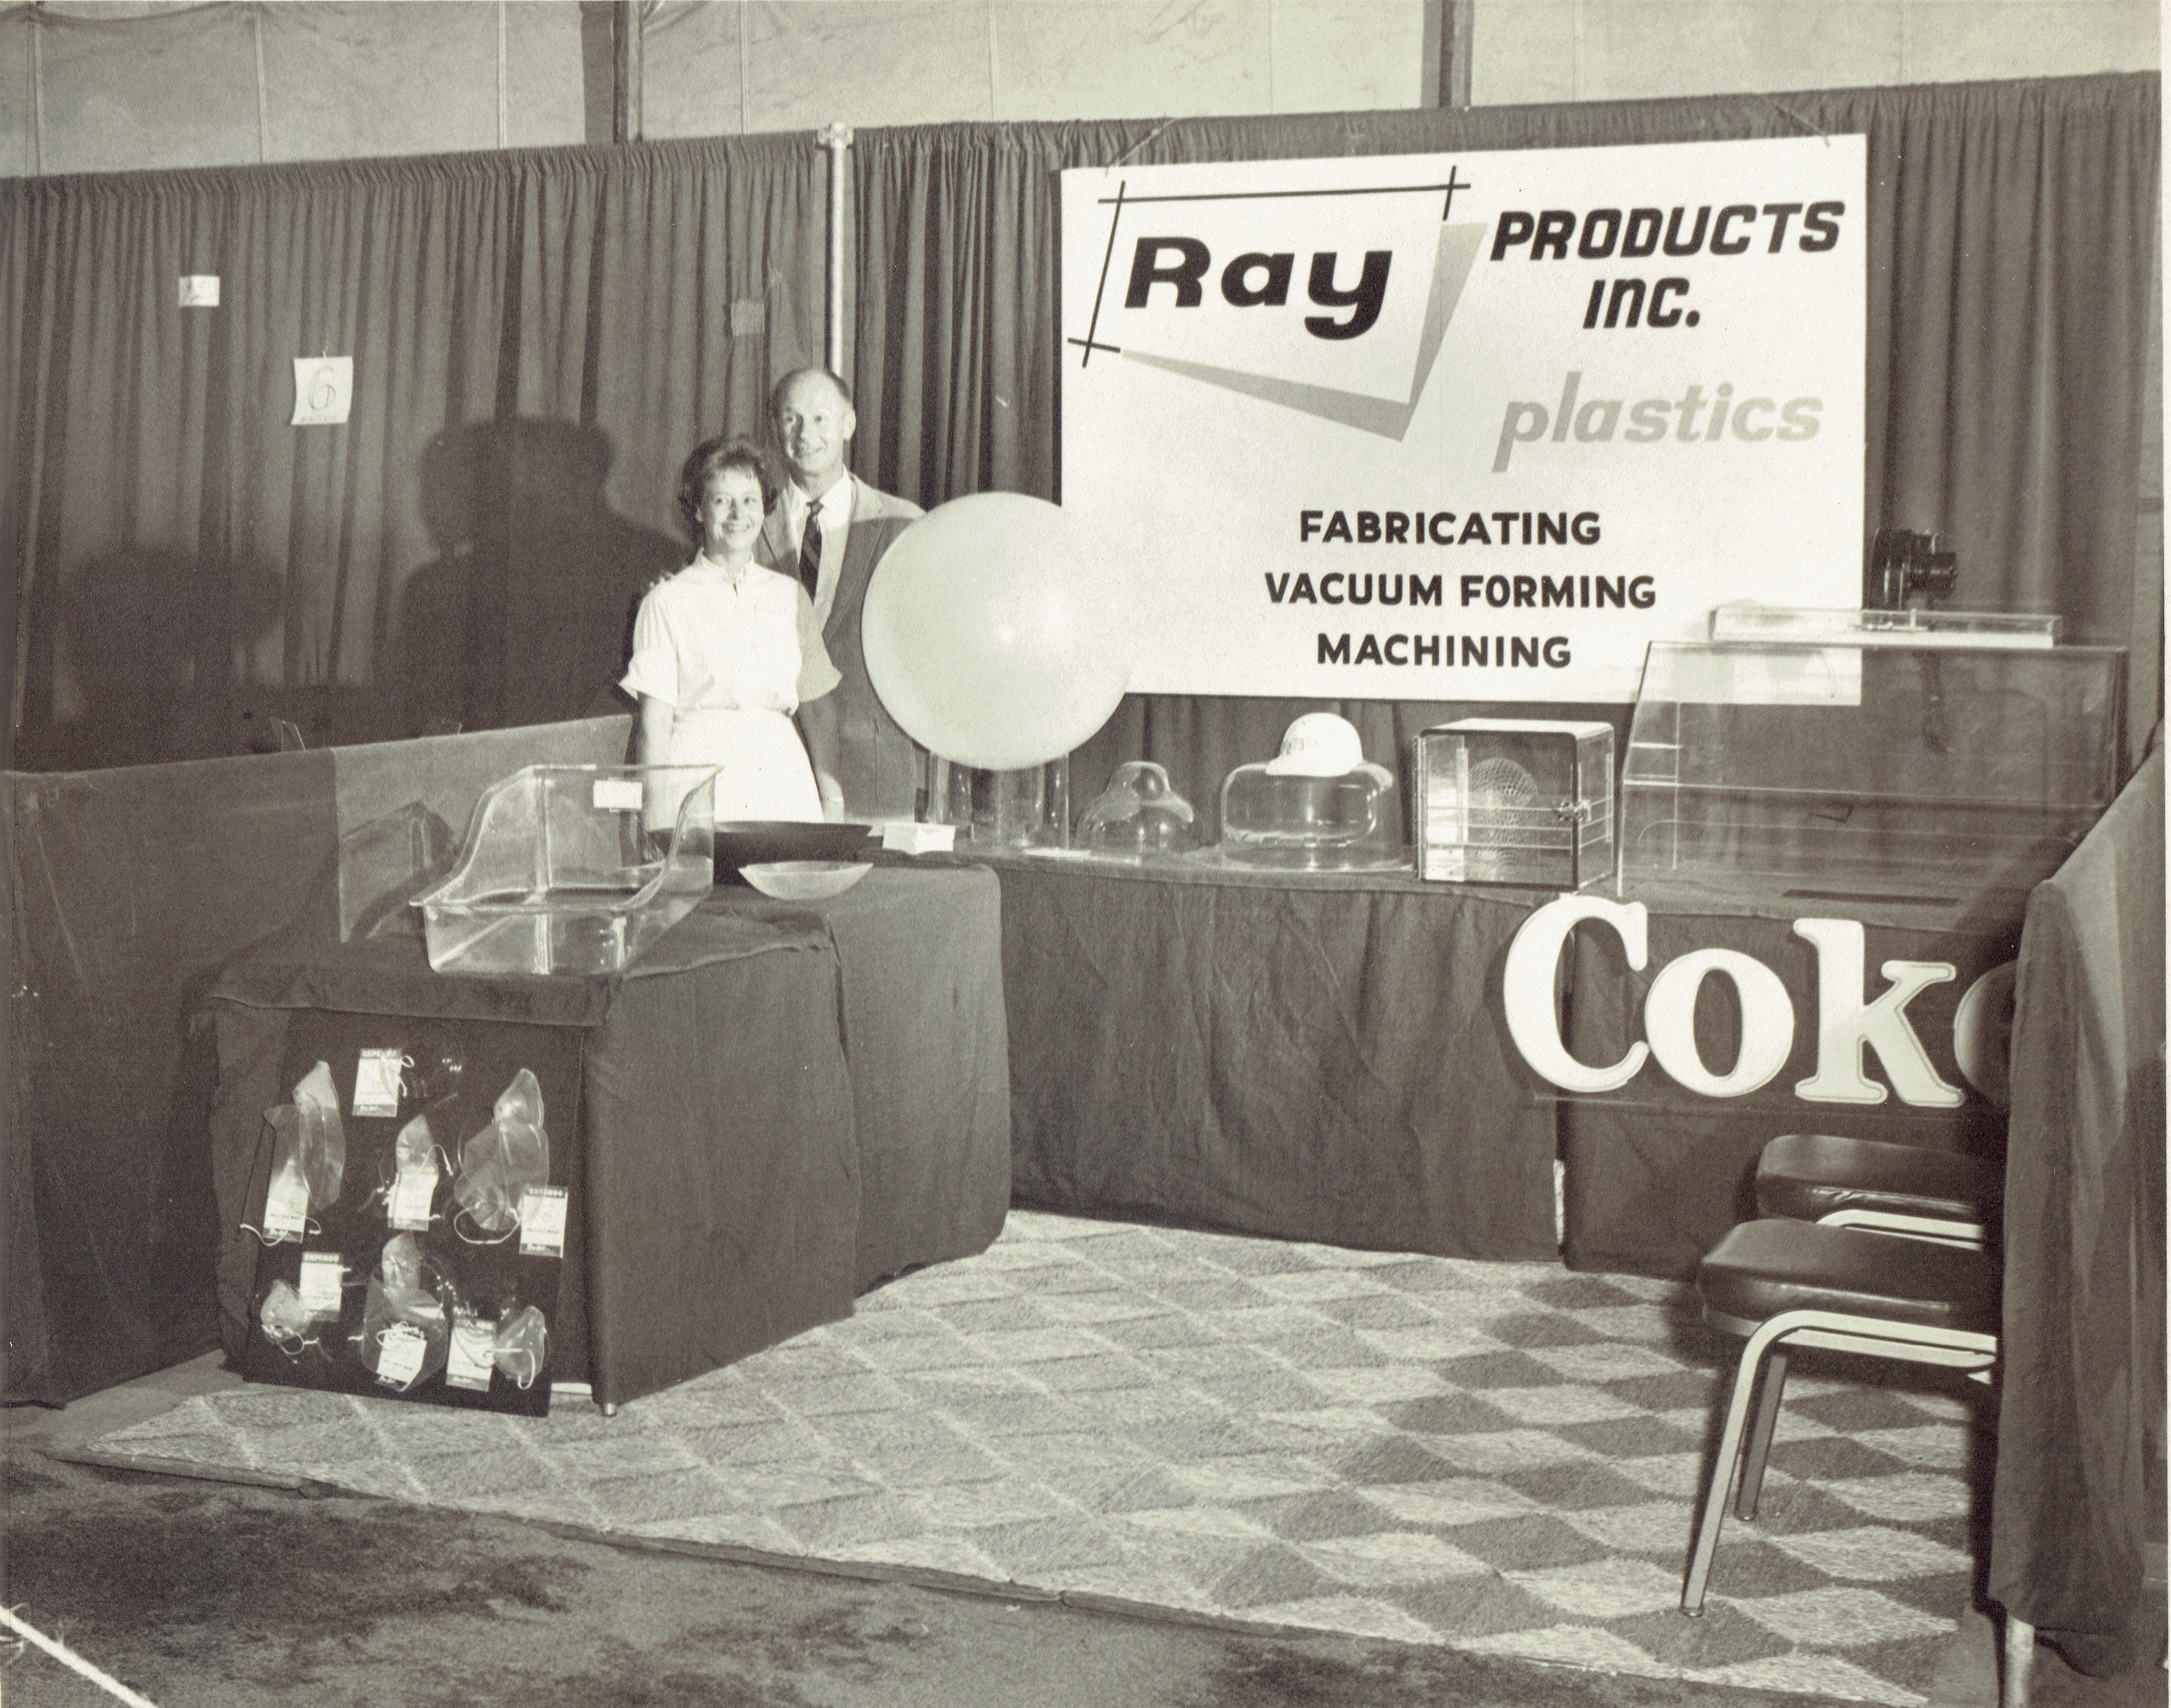 A Story 70 Years in the Making | Ray Products